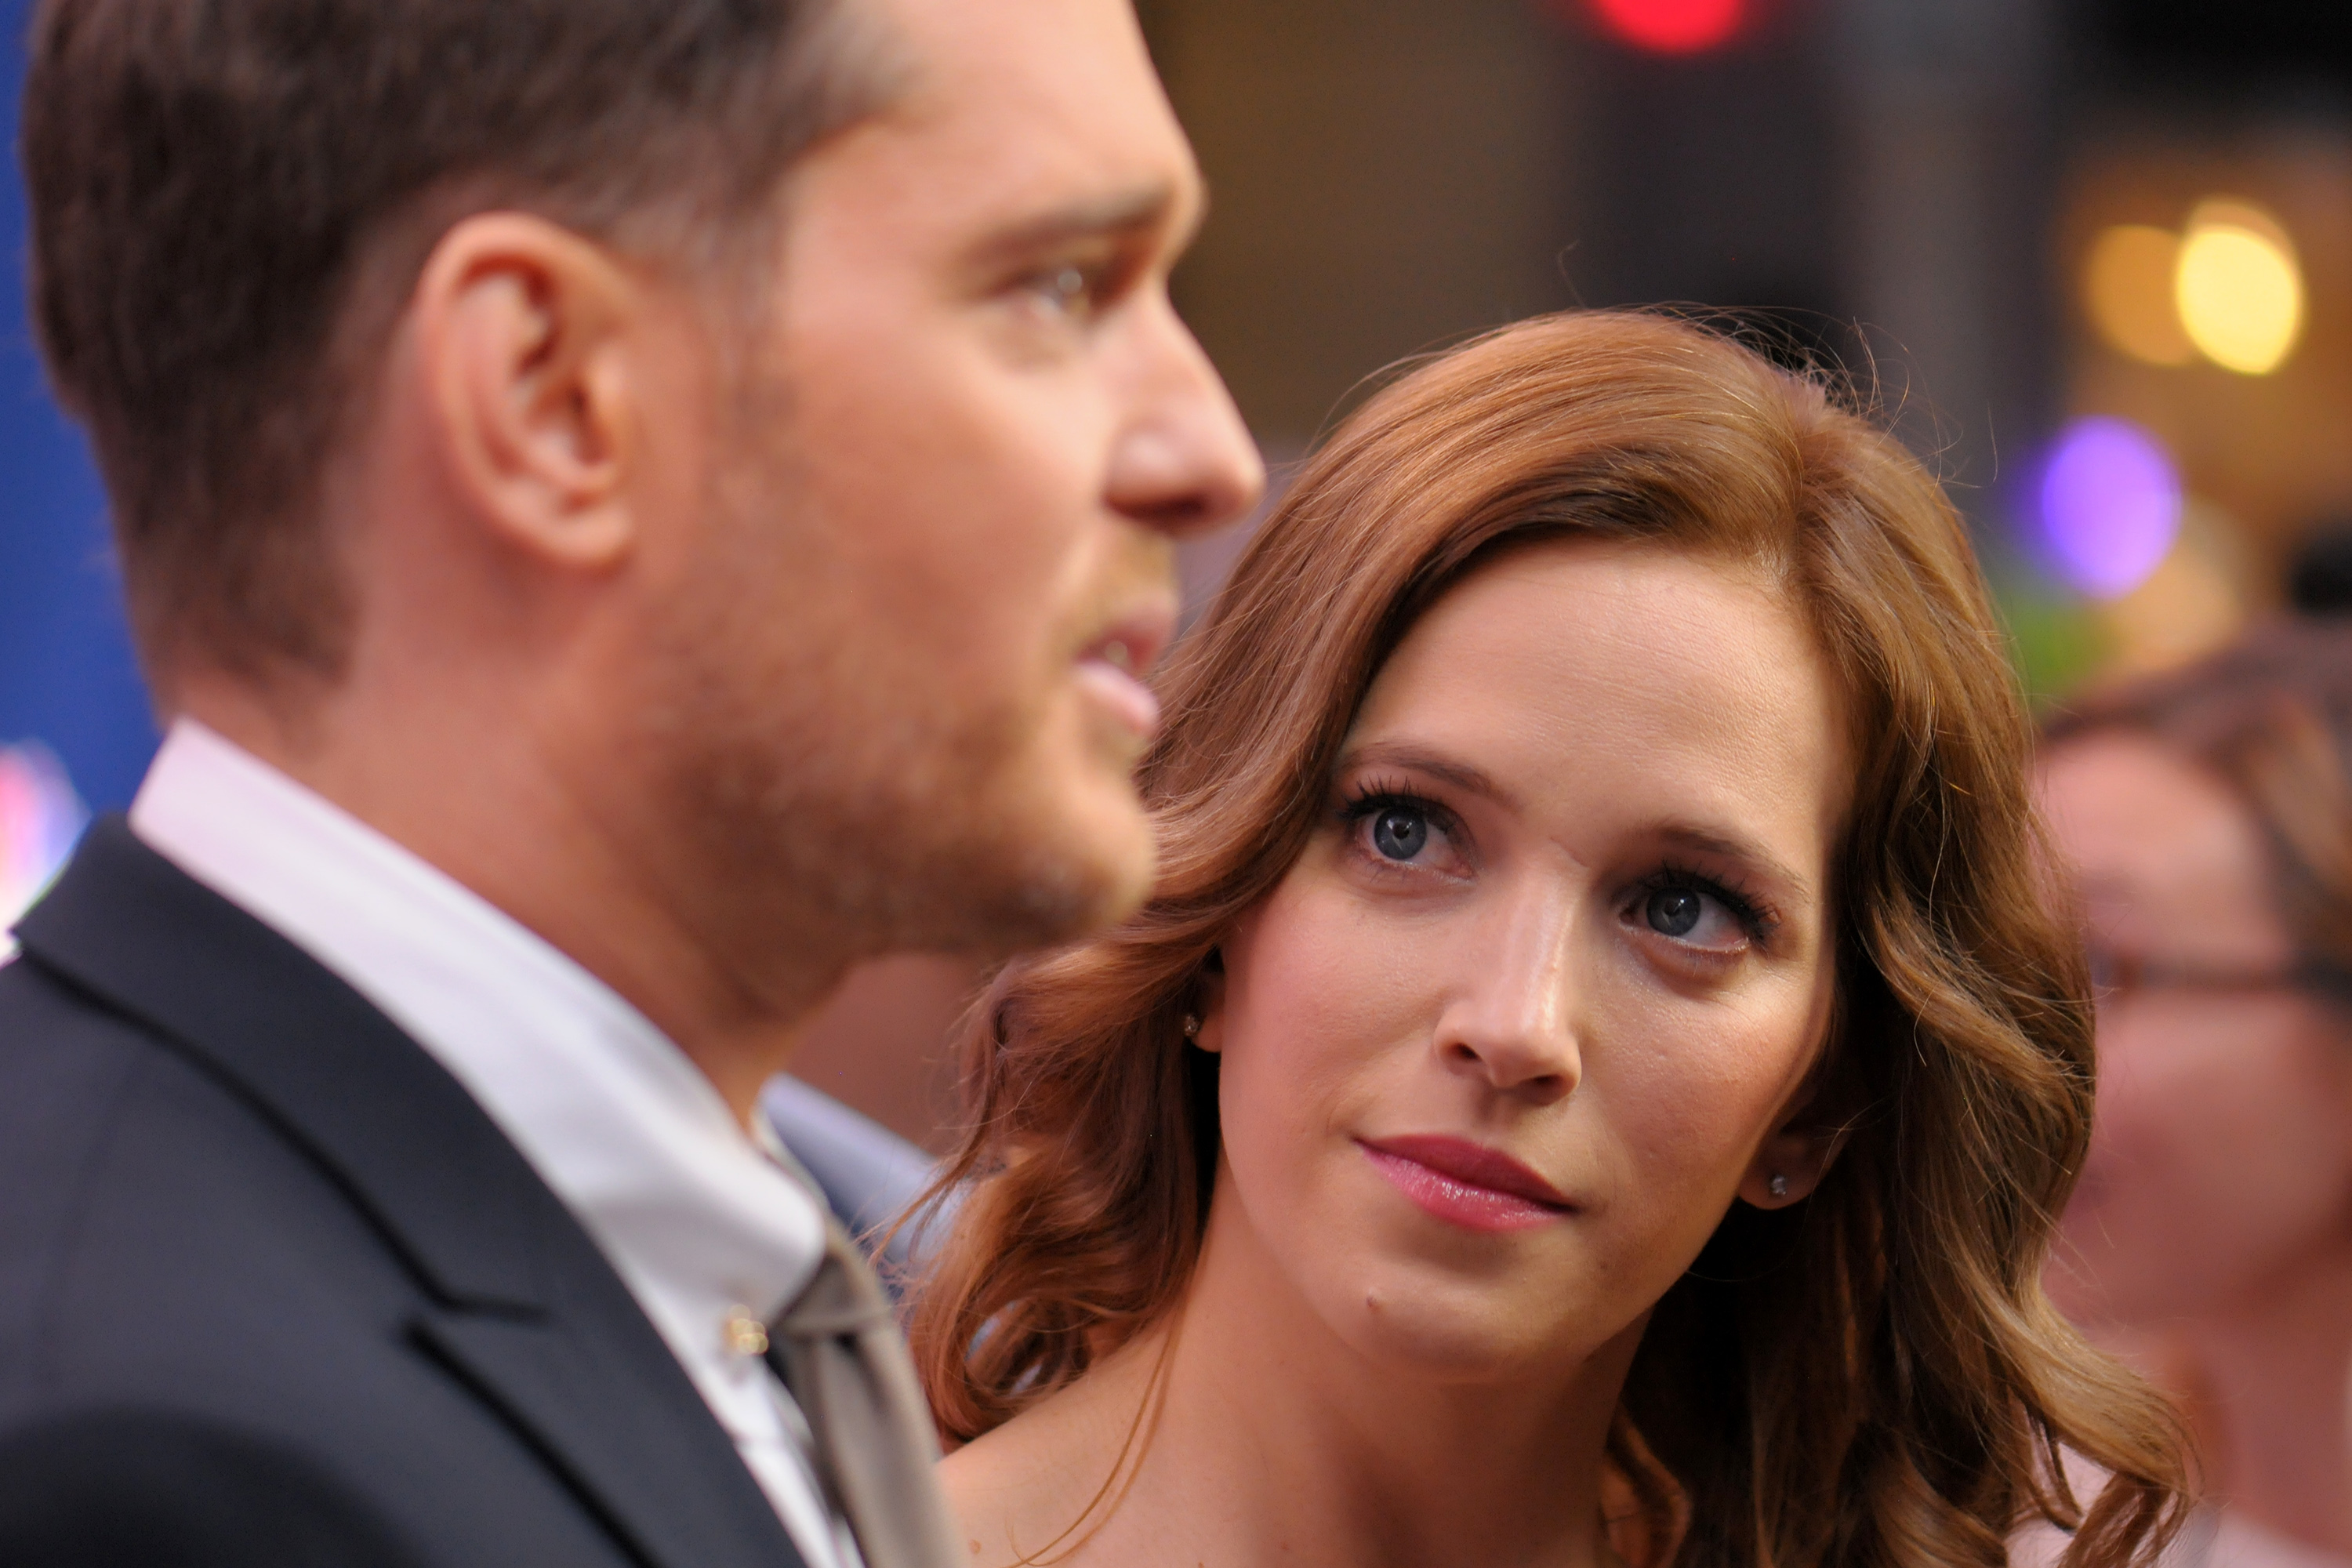 Michael Bublé's wife breaks silence after son's cancer treatment